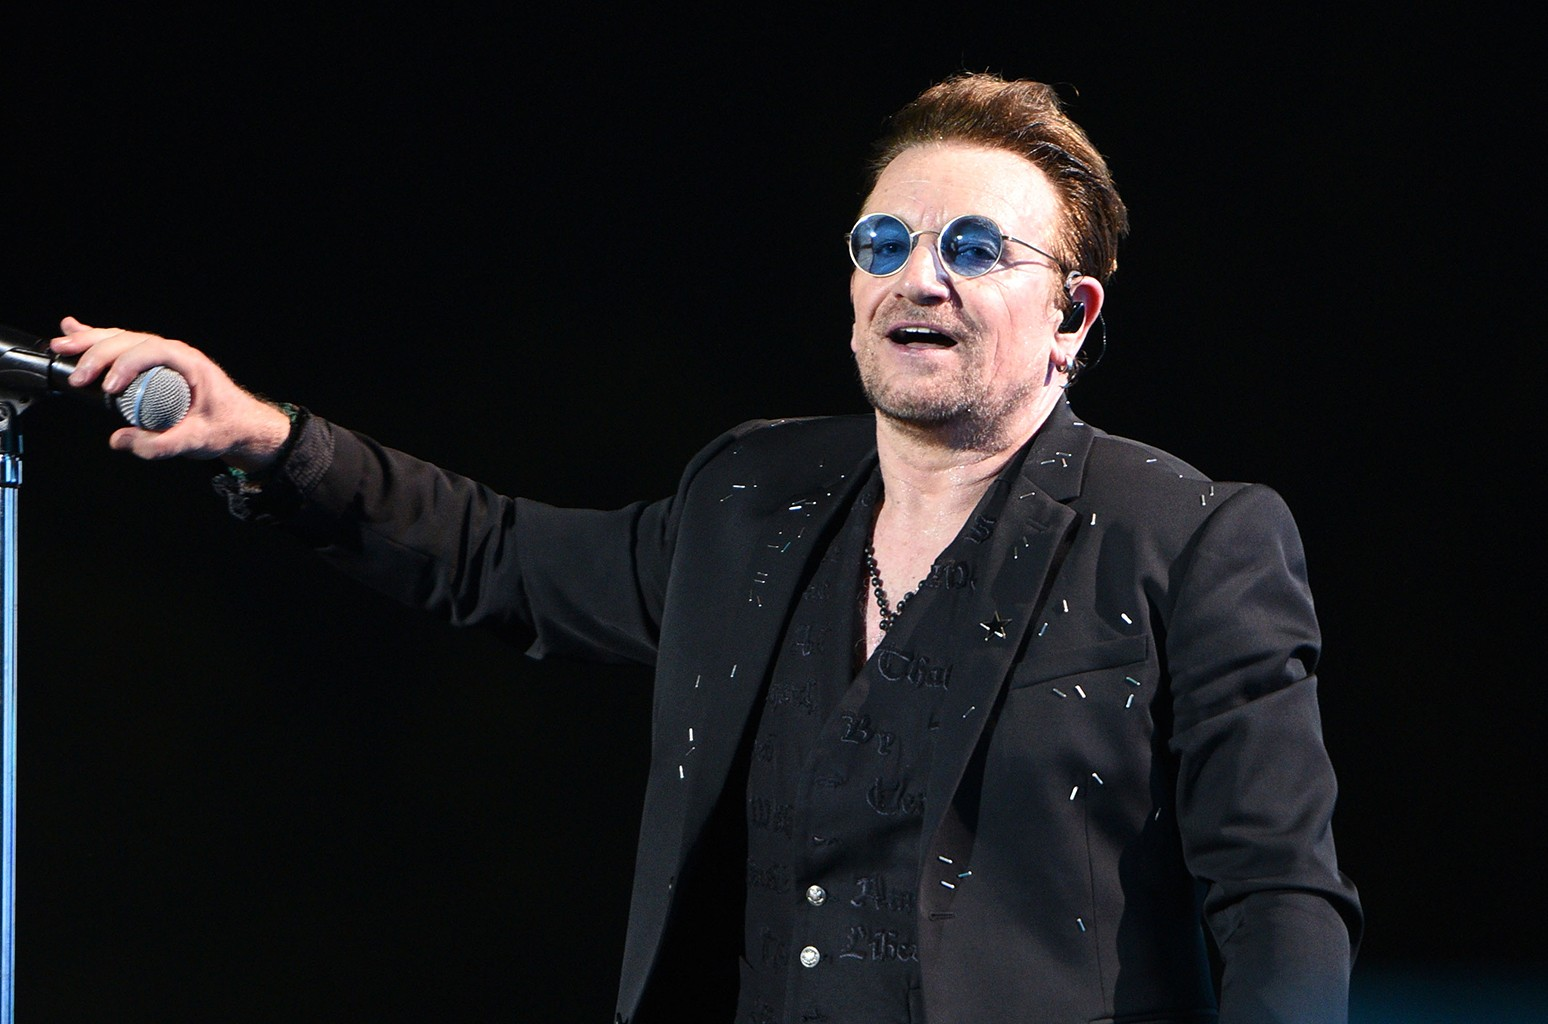 Bono of U2 performs during the 2017 Bonnaroo Arts And Music Festival on June 9, 2017 in Manchester, Tenn.